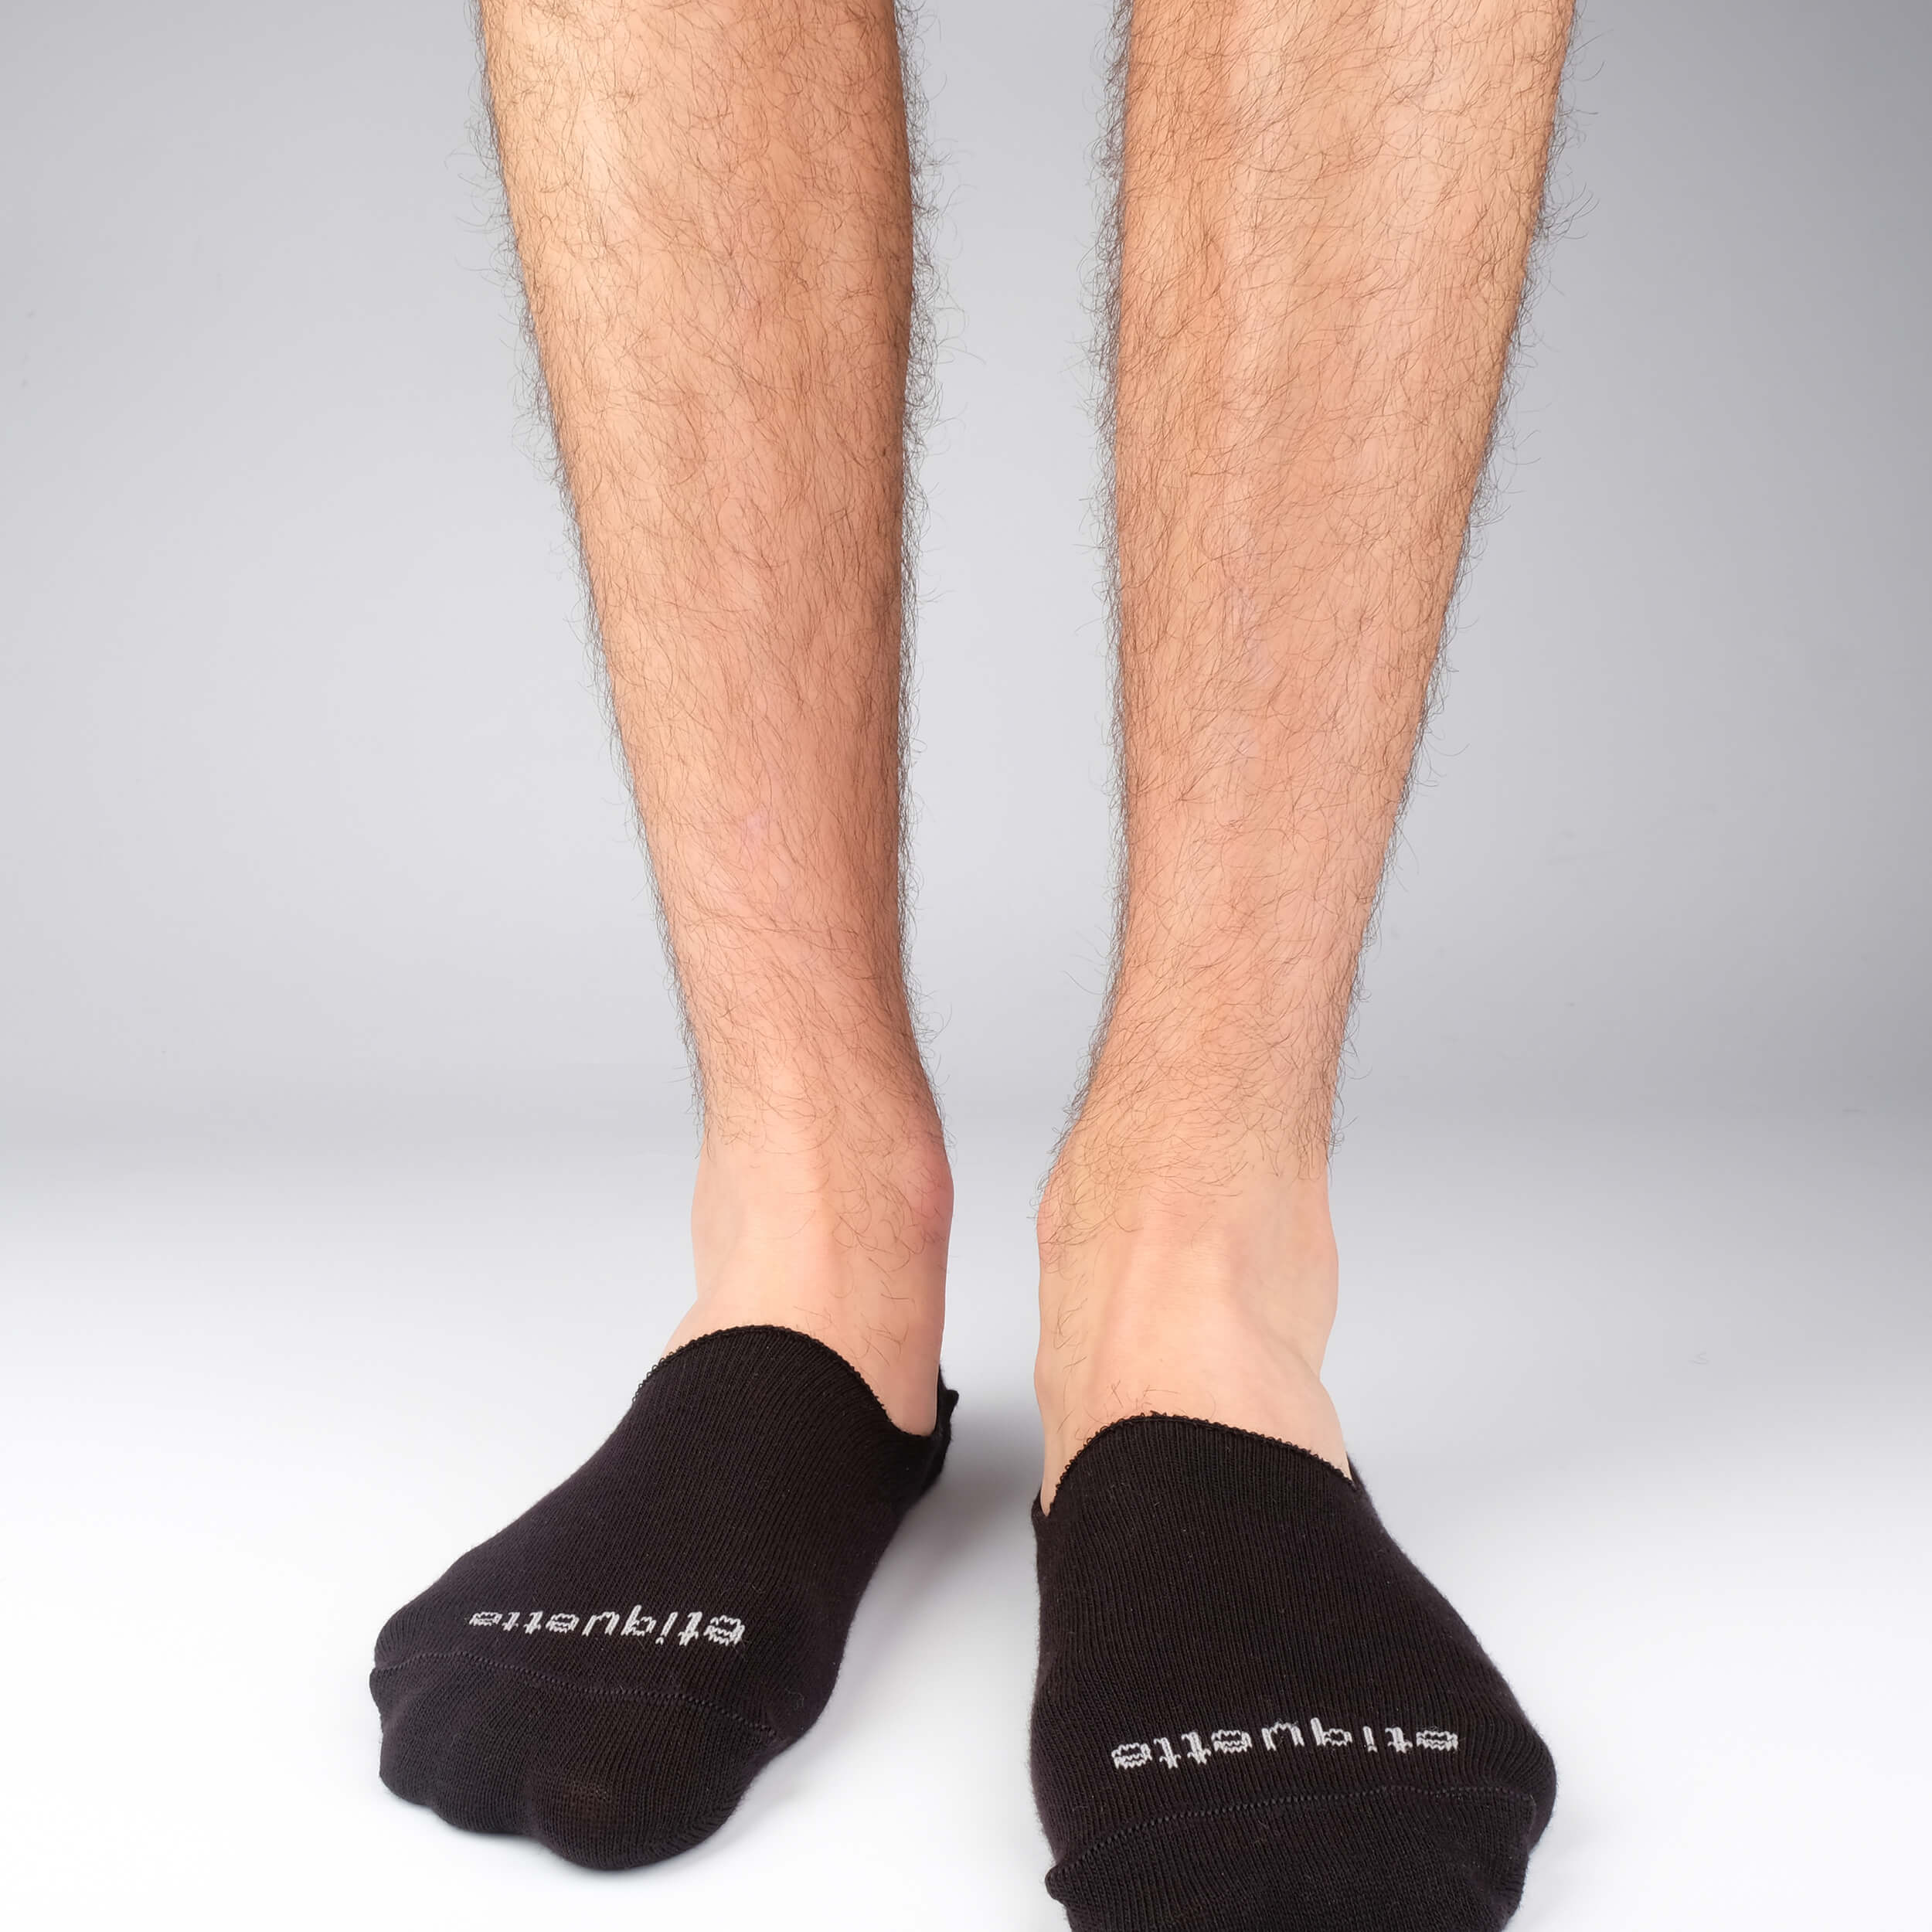 Mens Socks - Men's No Show Socks - Black⎪Etiquette Clothiers